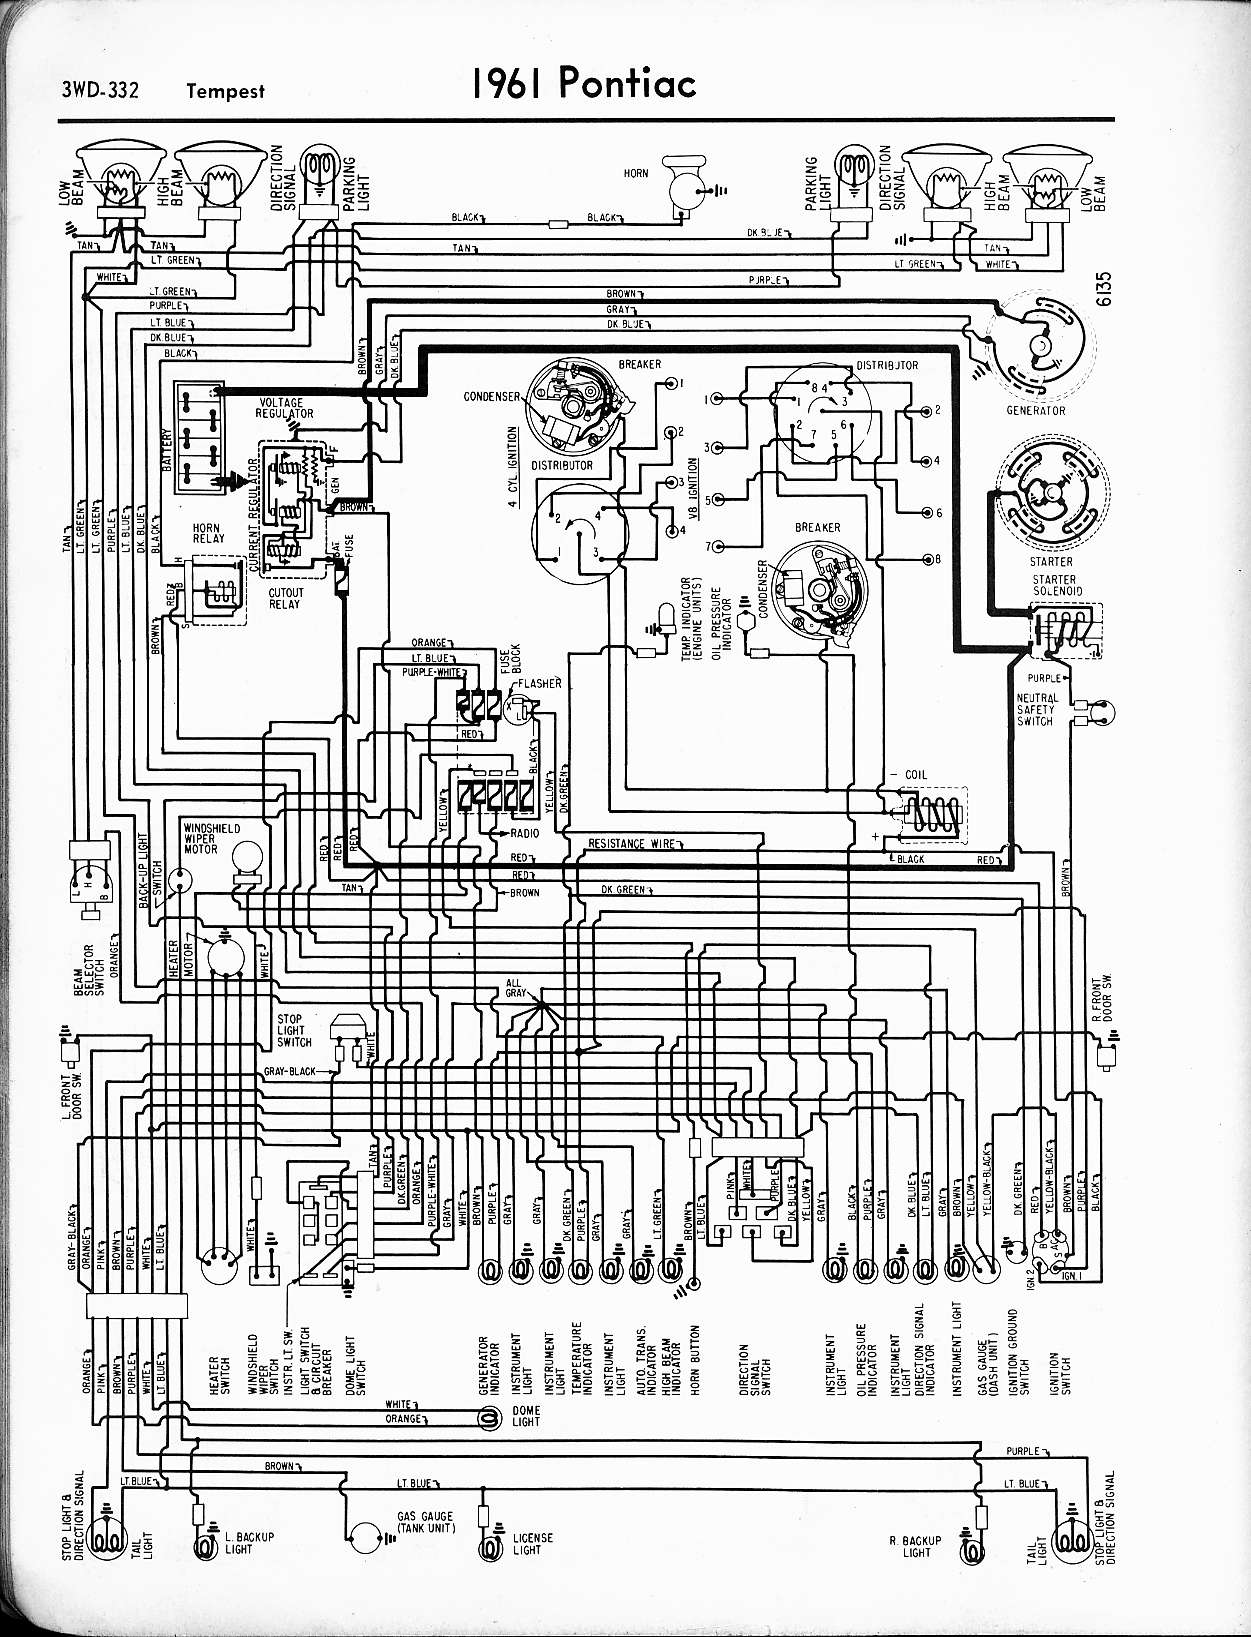 Wallace Racing Wiring Diagrams Diagram Further Wall Heater Get Free Image About 1961 Tempest